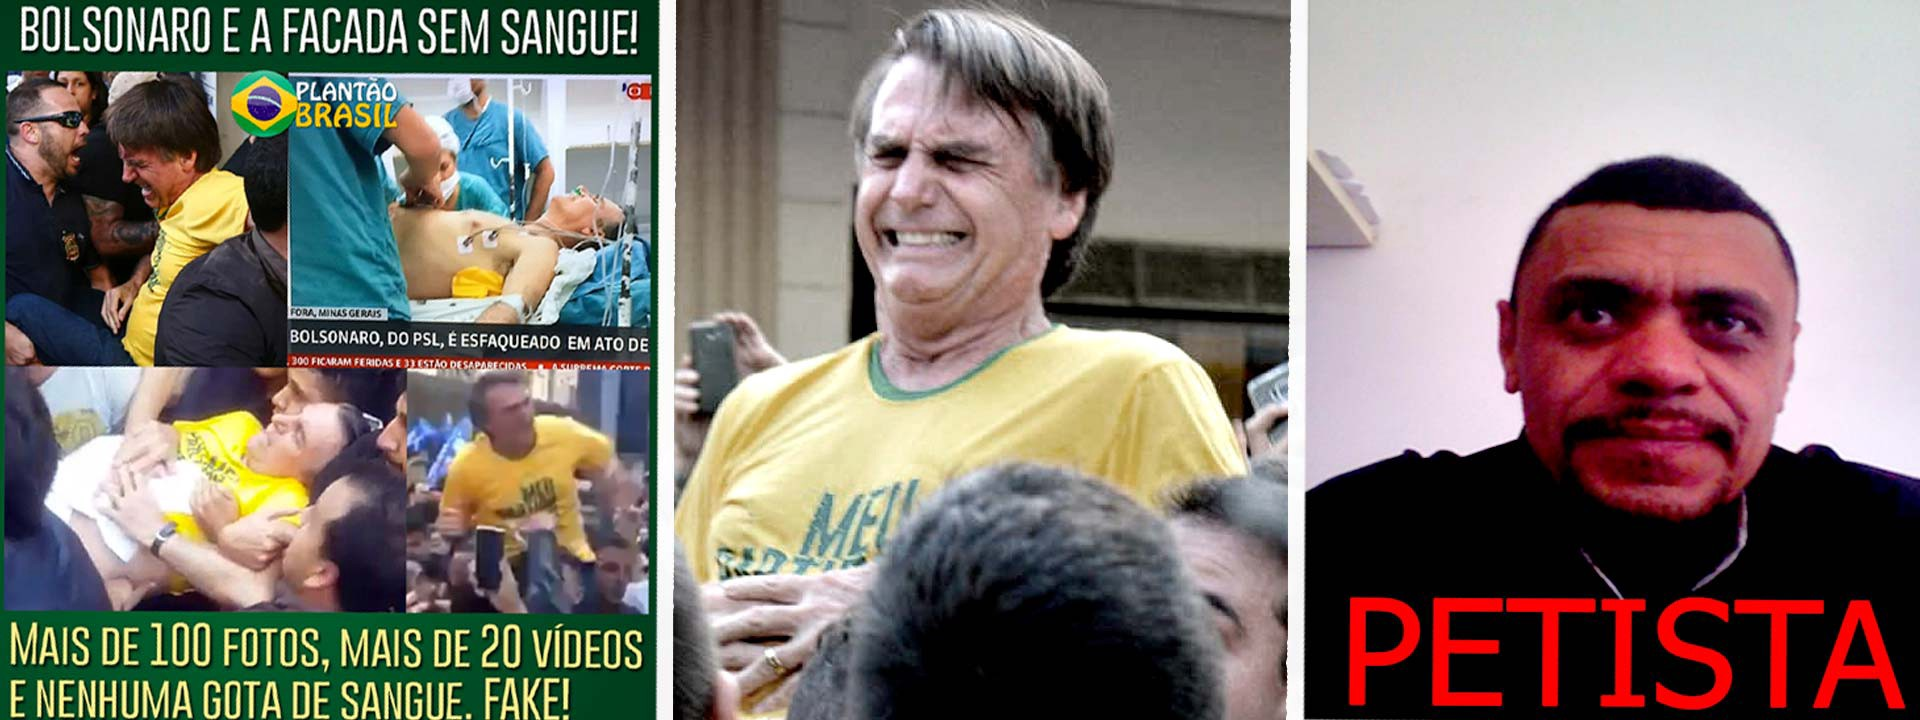 From left to right image created by plantão brasil and circulated on social media claiming the attack on bolsonaro was fake archived on september 13